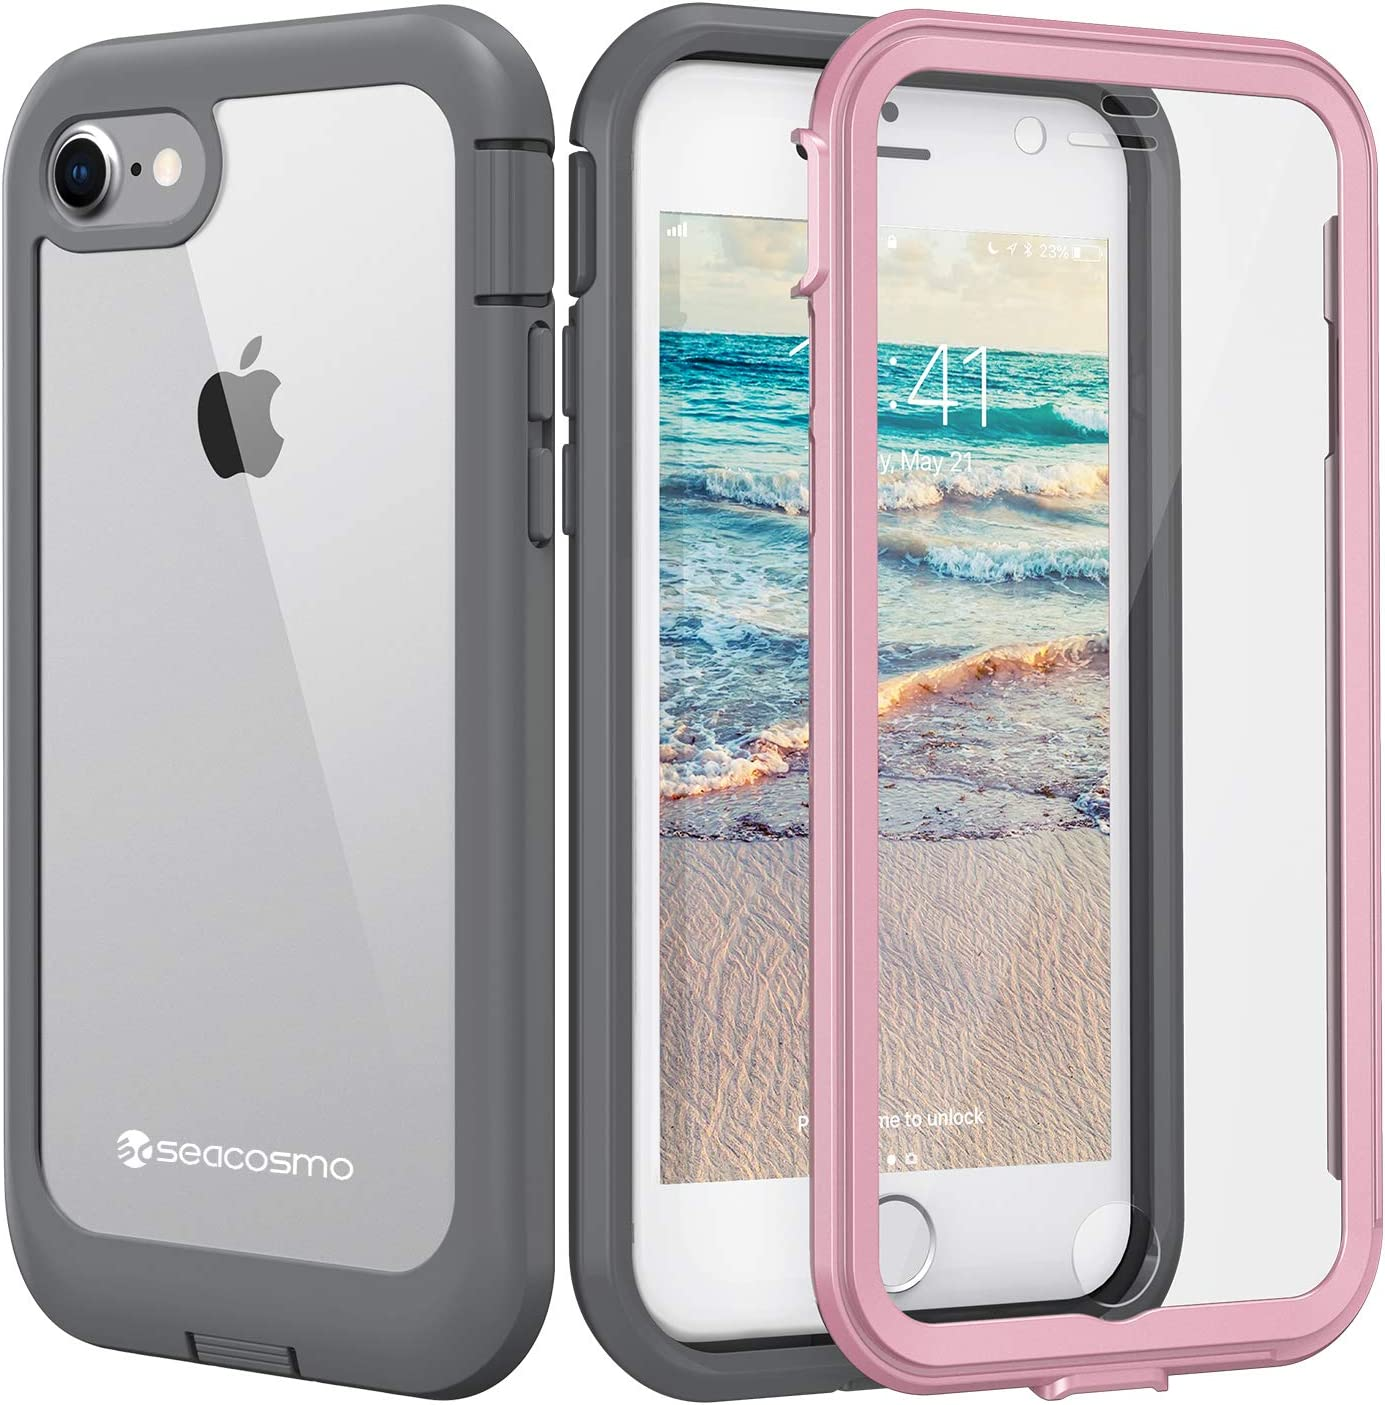 seacosmo iPhone SE 2020 Case, iPhone 7/8 Case, Dual Layer Clear Case with Built-in Screen Protector Full-Body Protective Bumper Case for iPhone SE 2020, iPhone 8/7-Clear/Pink